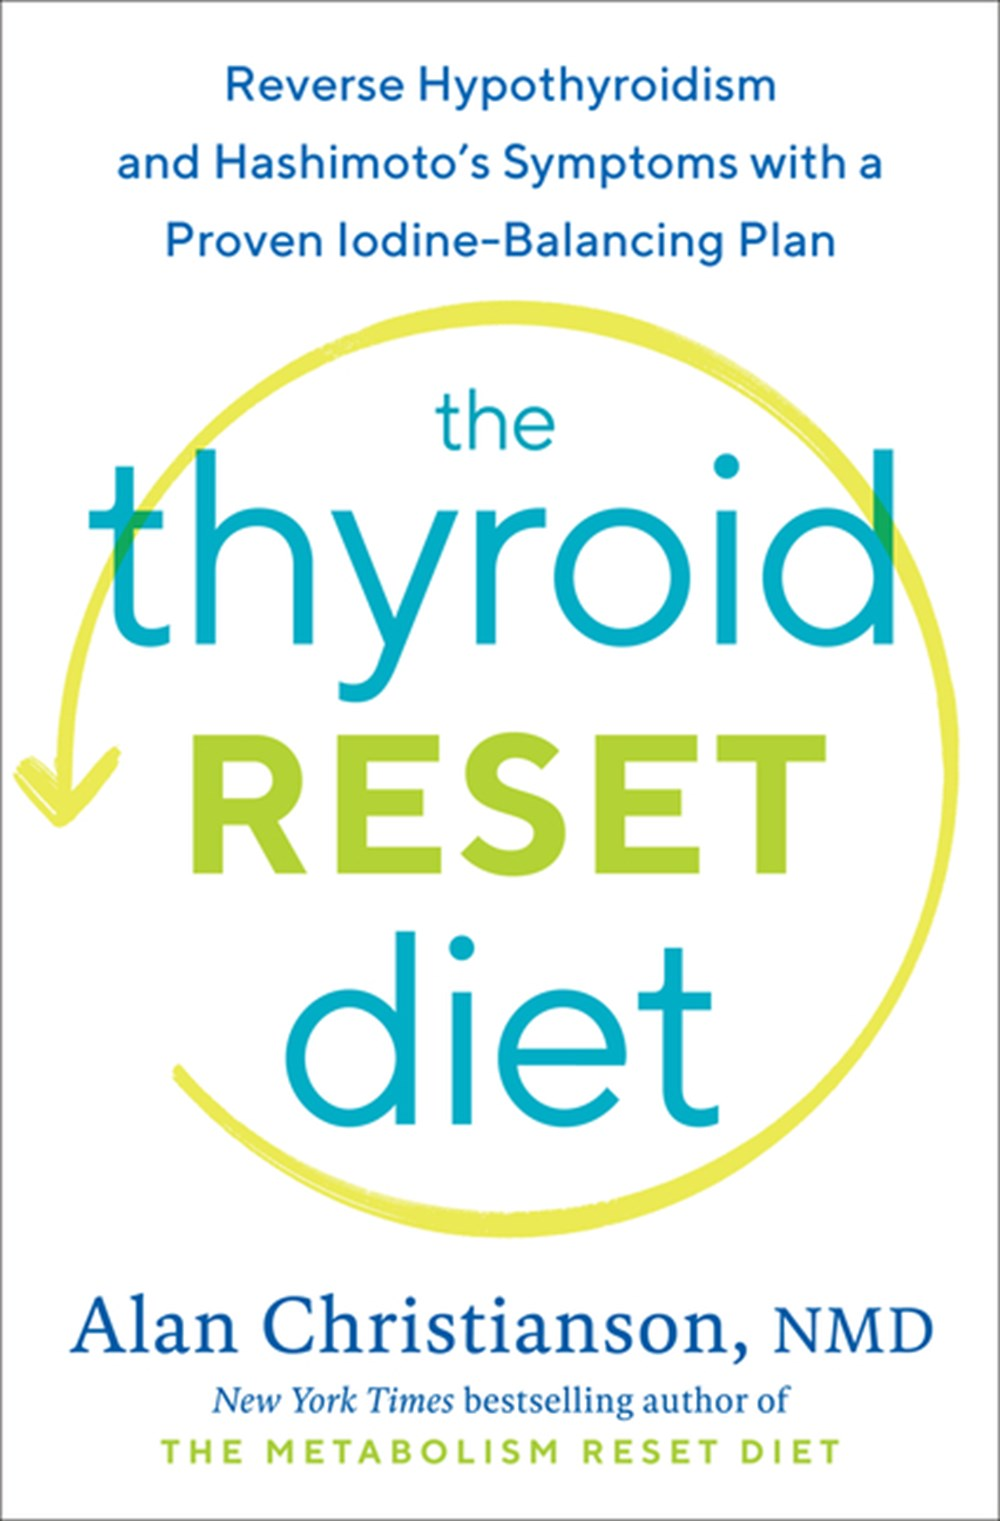 Thyroid Reset Diet Reverse Hypothyroidism and Hashimoto's Symptoms with a Proven Iodine-Balancing Pl